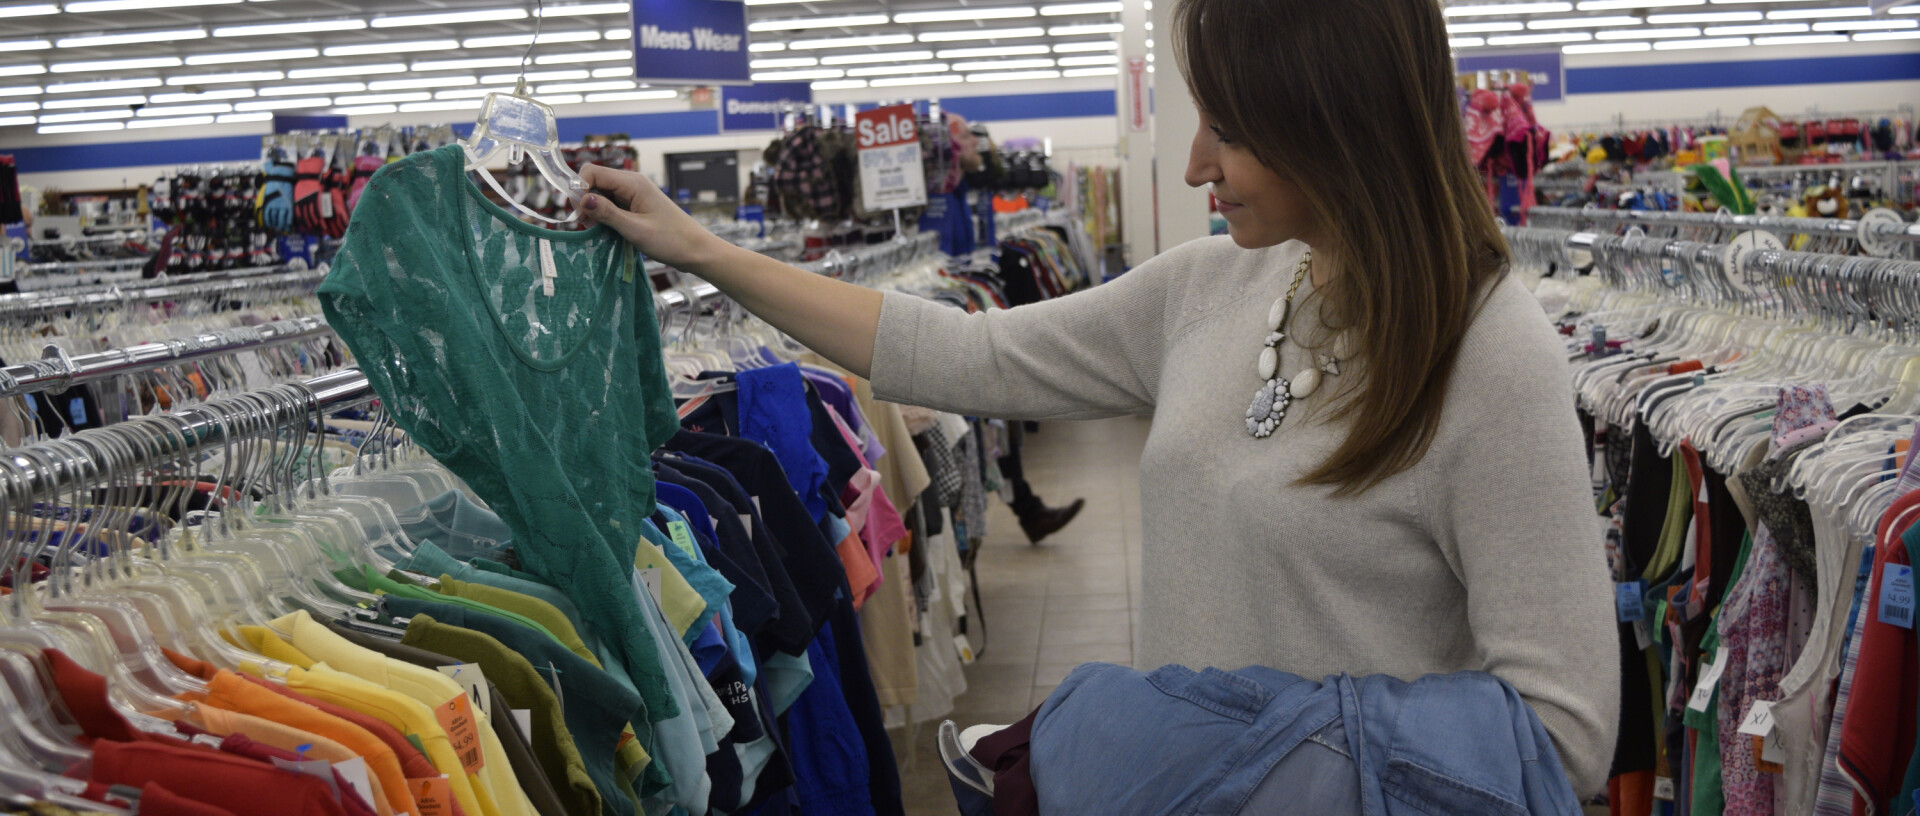 Goodwill Retail Stores and Donation Locations